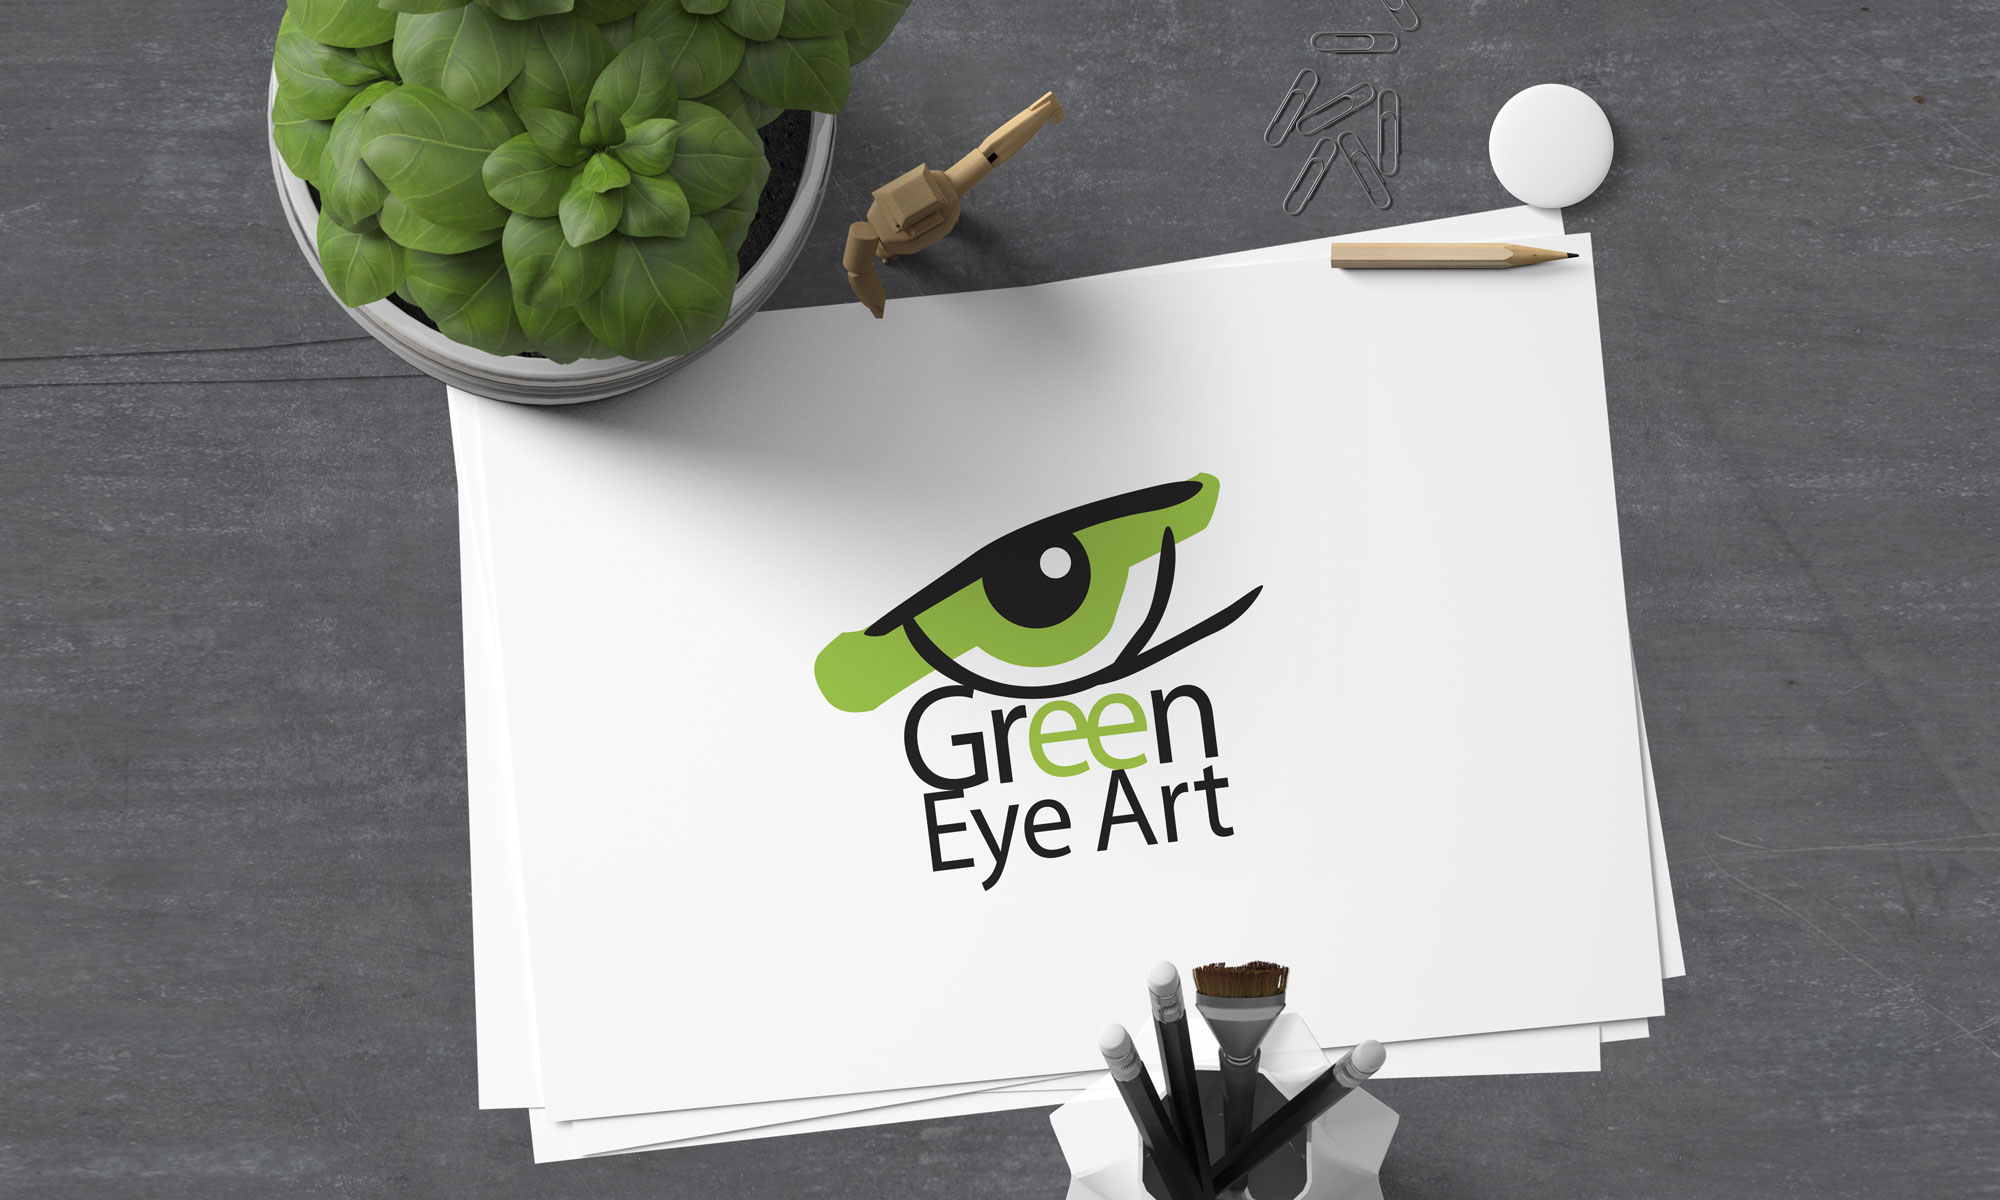 Green Eye Art